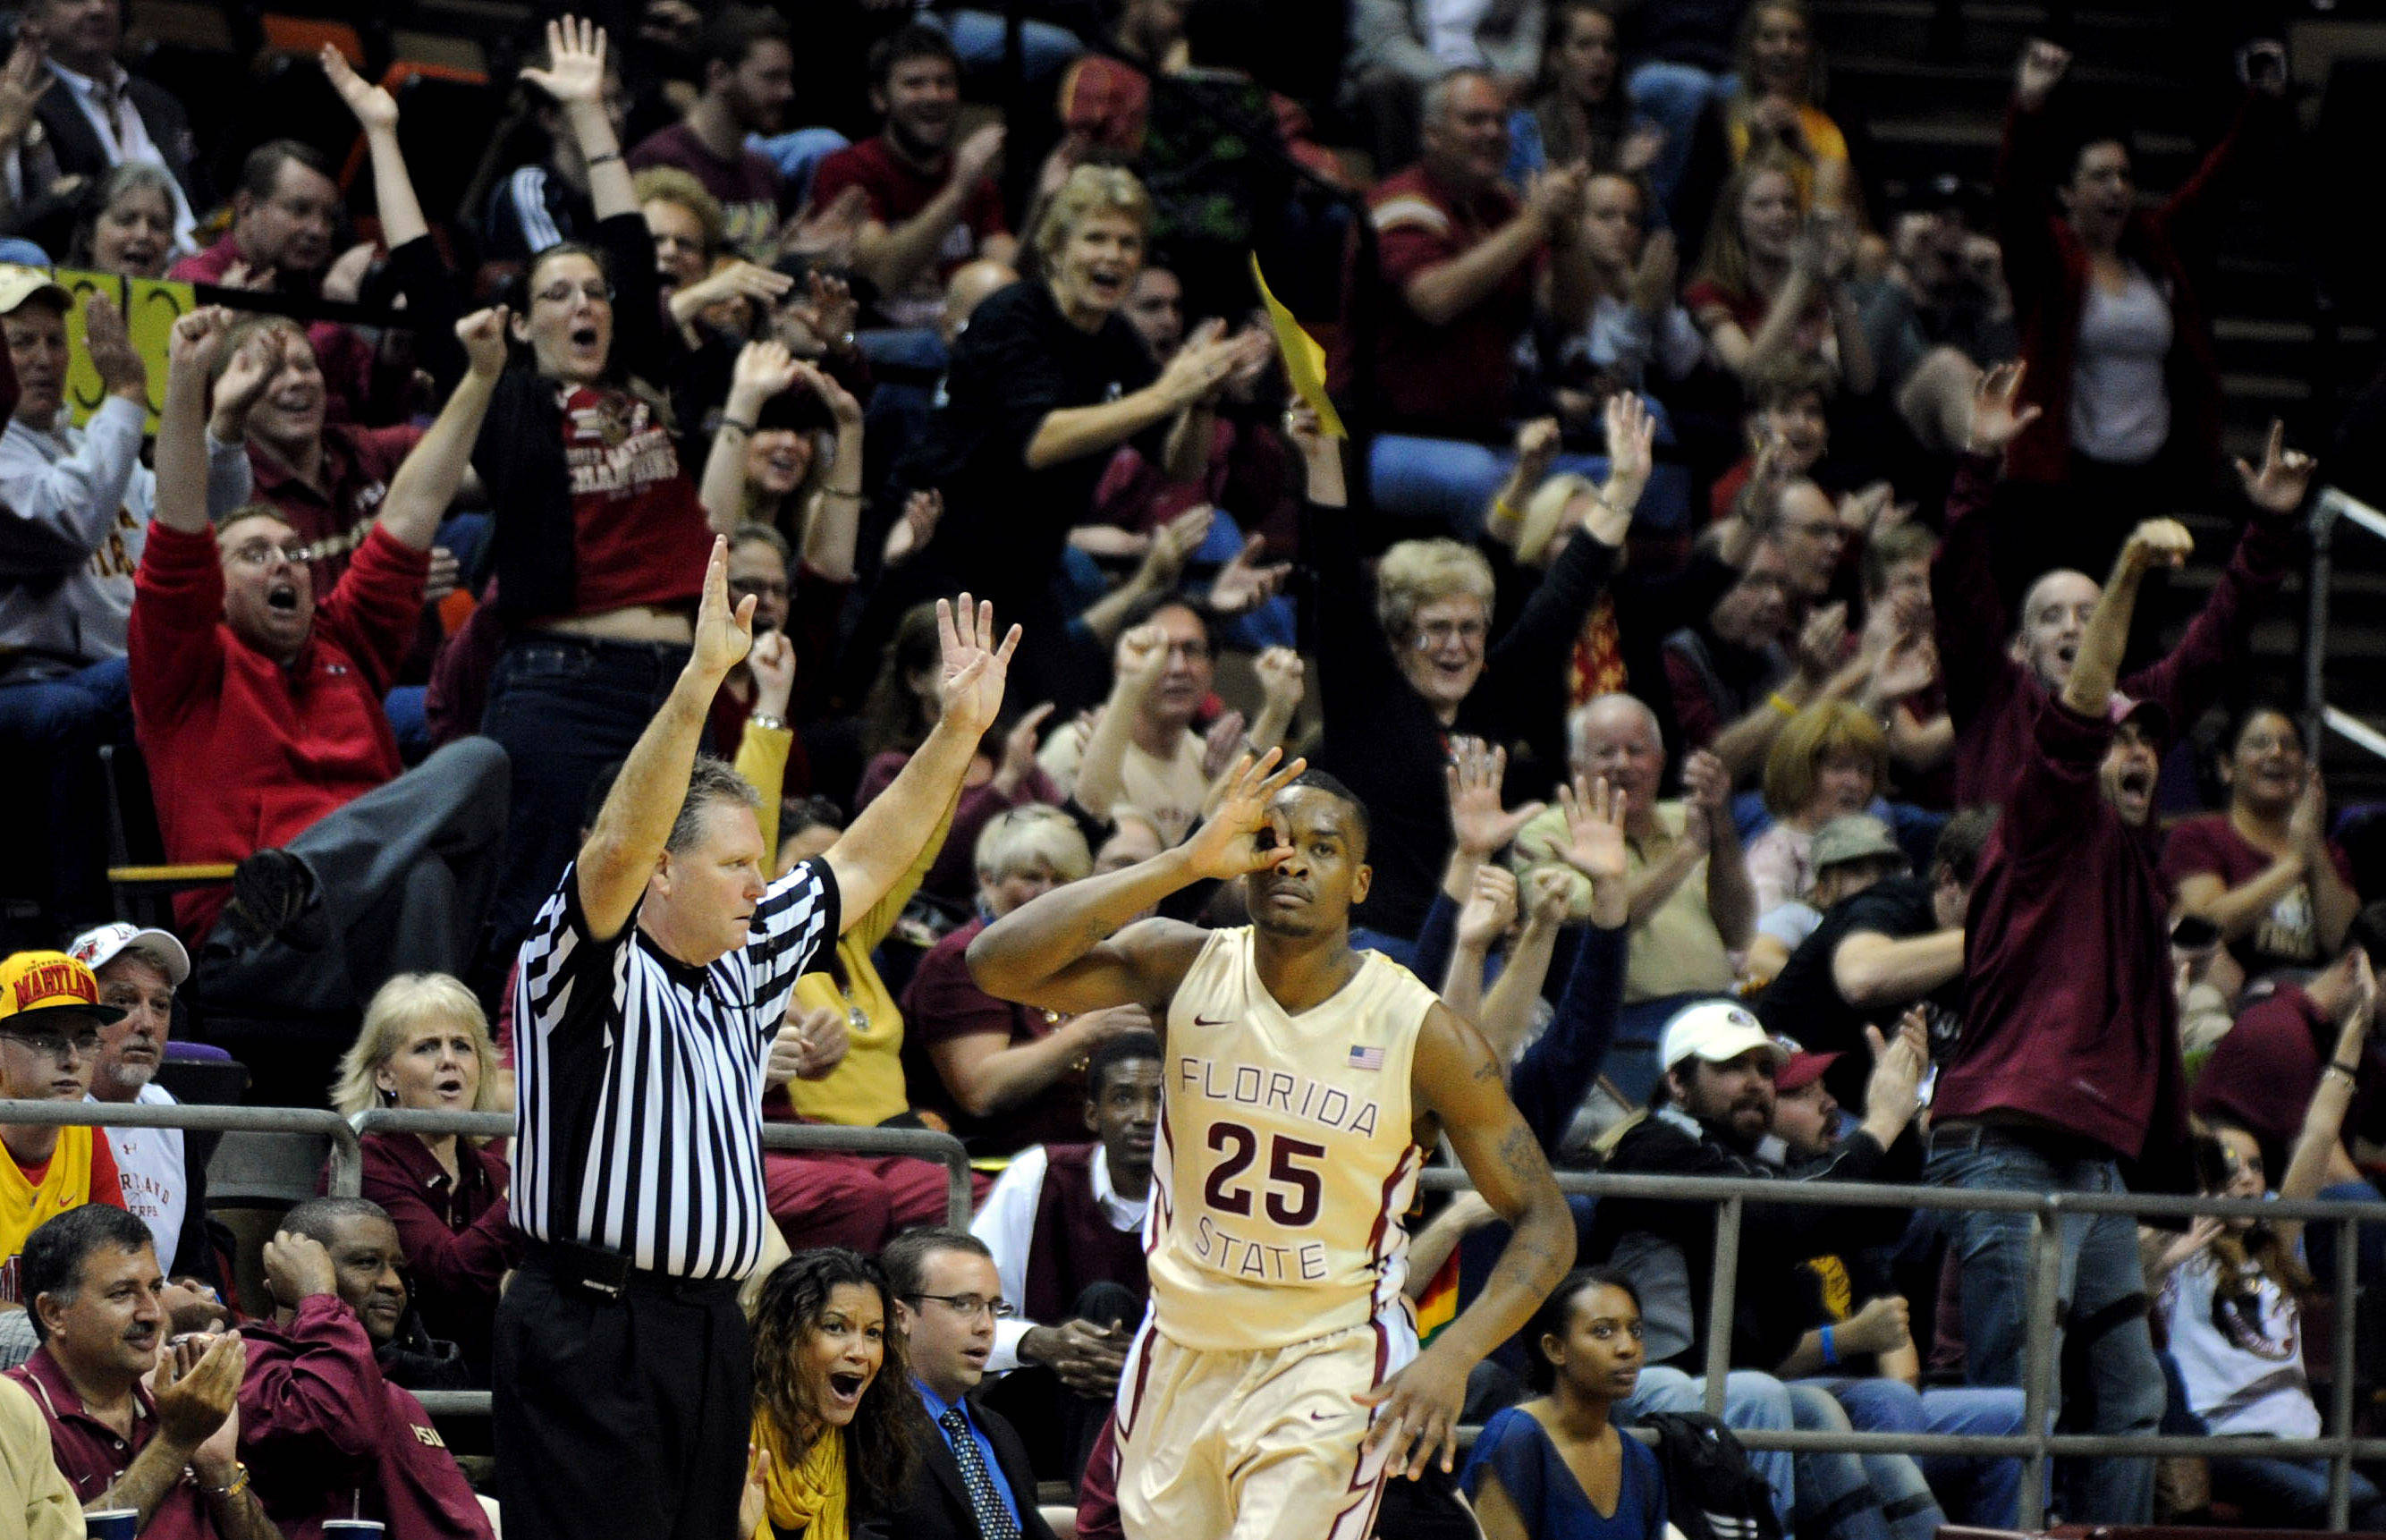 Jan 12, 2014; Tallahassee, FL, USA; Florida State Seminoles guard Aaron Thomas (25) celebrates after making a three point shot during the first half of the game against the Maryland Terrapins at Donald L. Tucker Center. Mandatory Credit: Melina Vastola-USA TODAY Sports